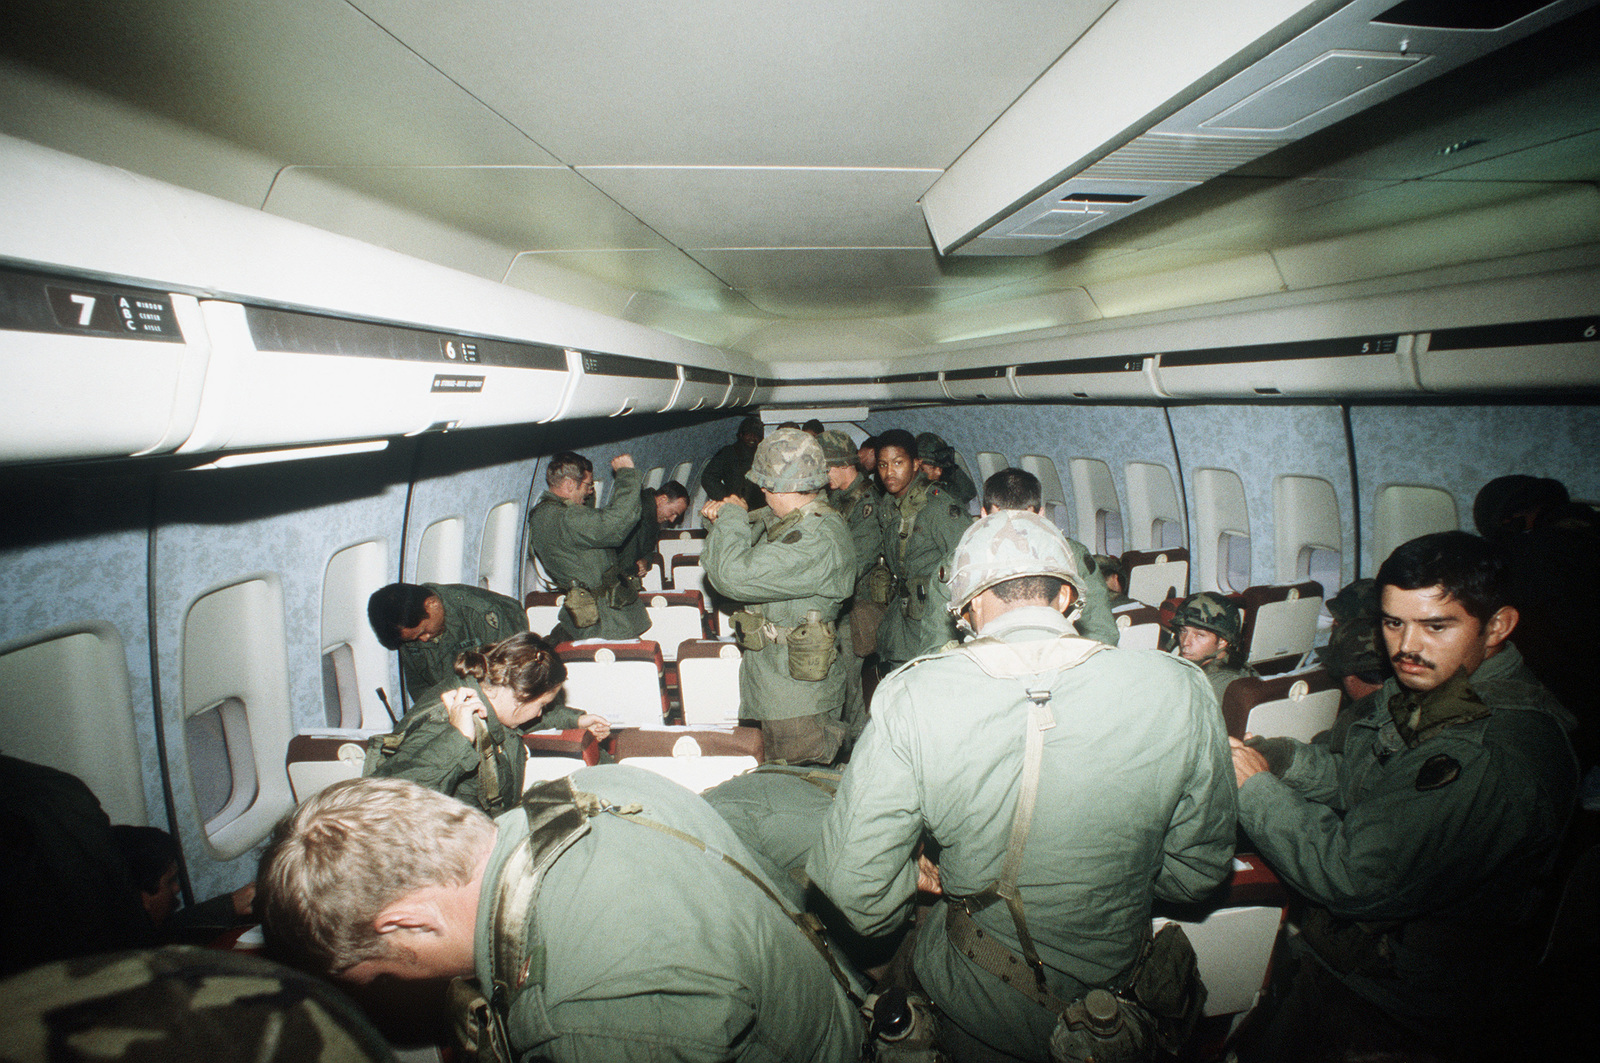 U. S. Army troops from the 25th Infantry Division gather their gear together as preparation are made to disembark their B-747 aircraft. The men are participating in Exercise Team Spirit '82